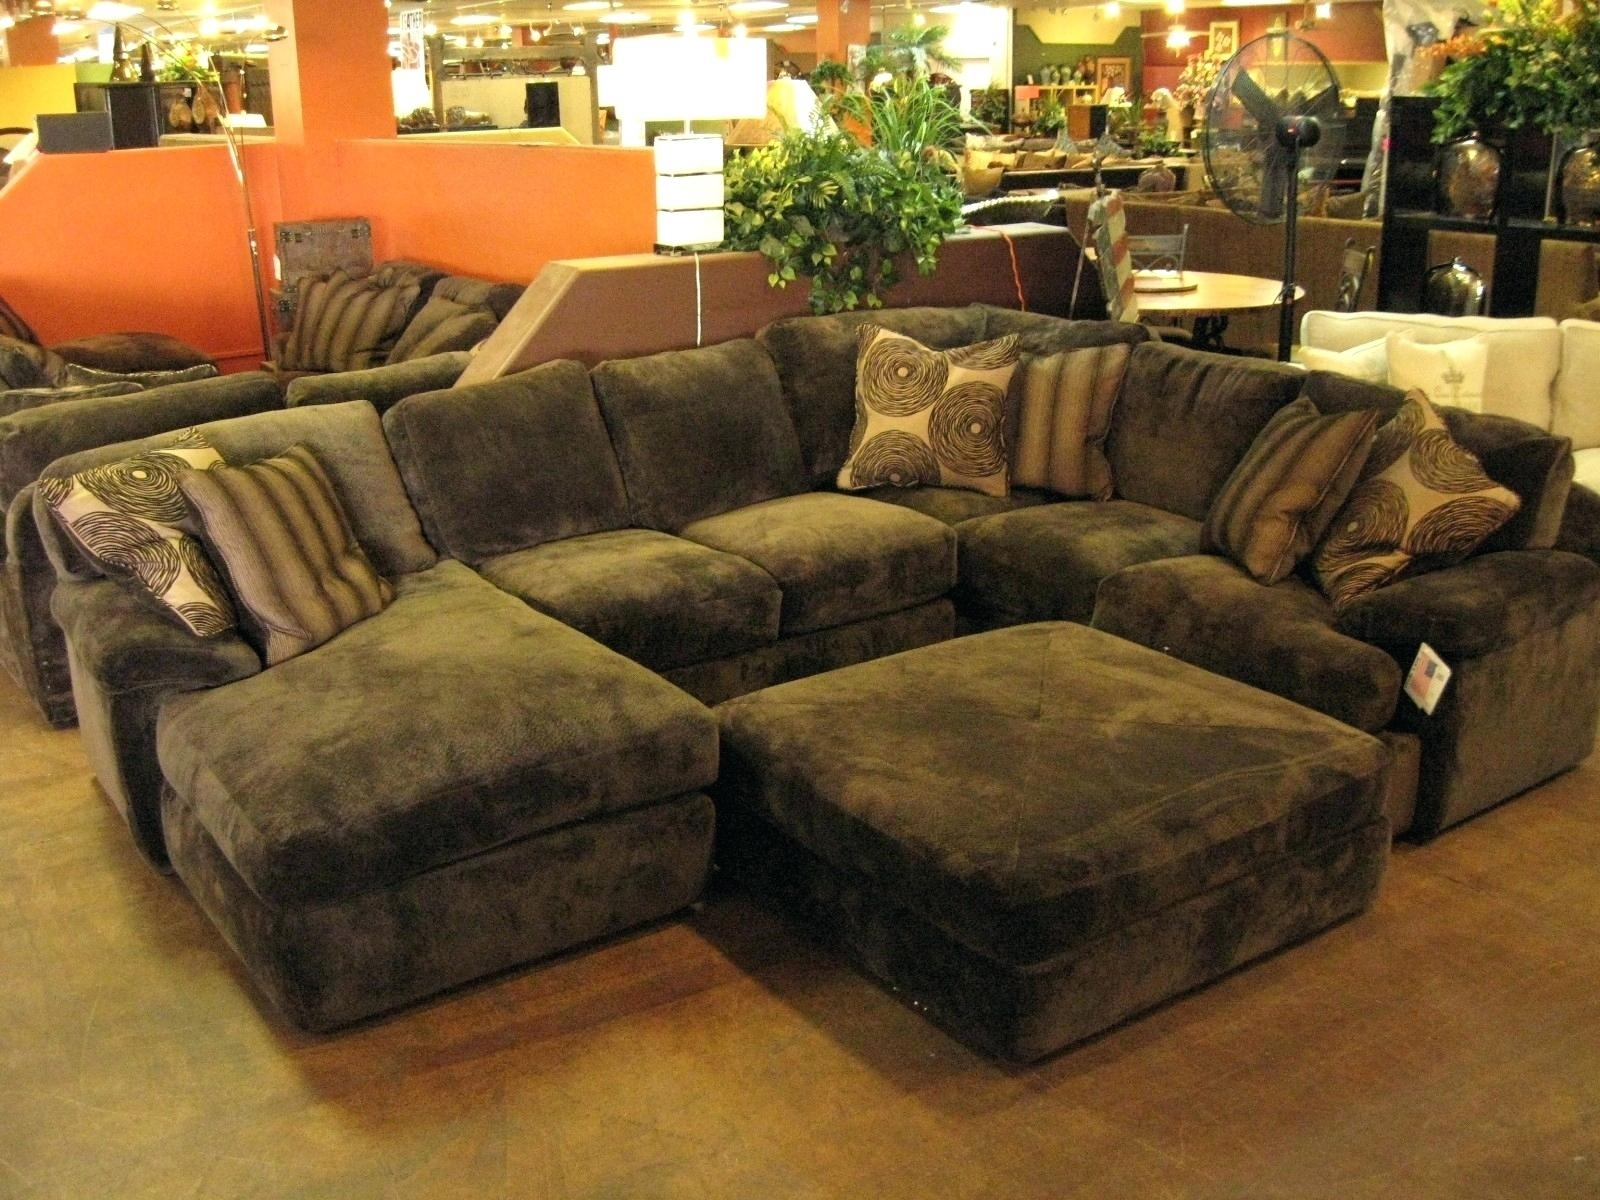 Sectional Sofas Okc Or T Cheap For Sale Ok – Koupelnynaklic with Okc Sectional Sofas (Image 7 of 10)